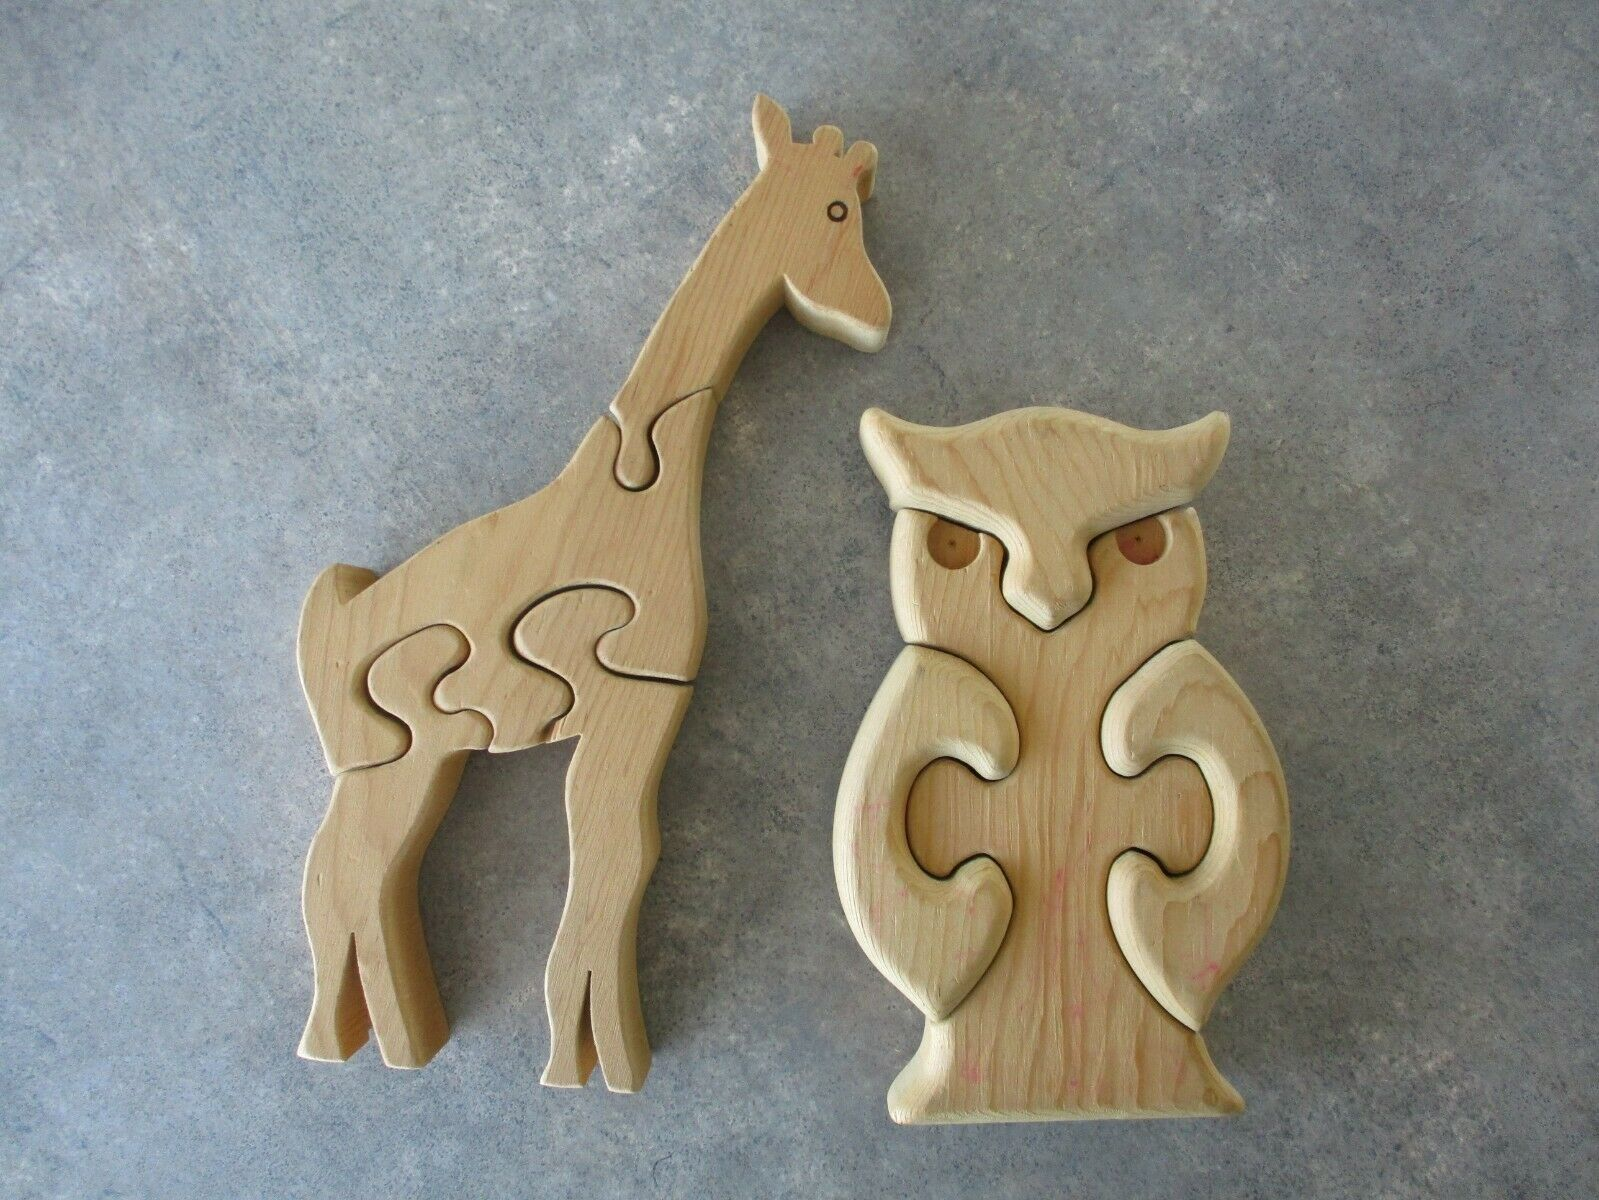 Vintage Hand-Made Solid Wood Children's Animal Shape Puzzles Giraffe And Owl